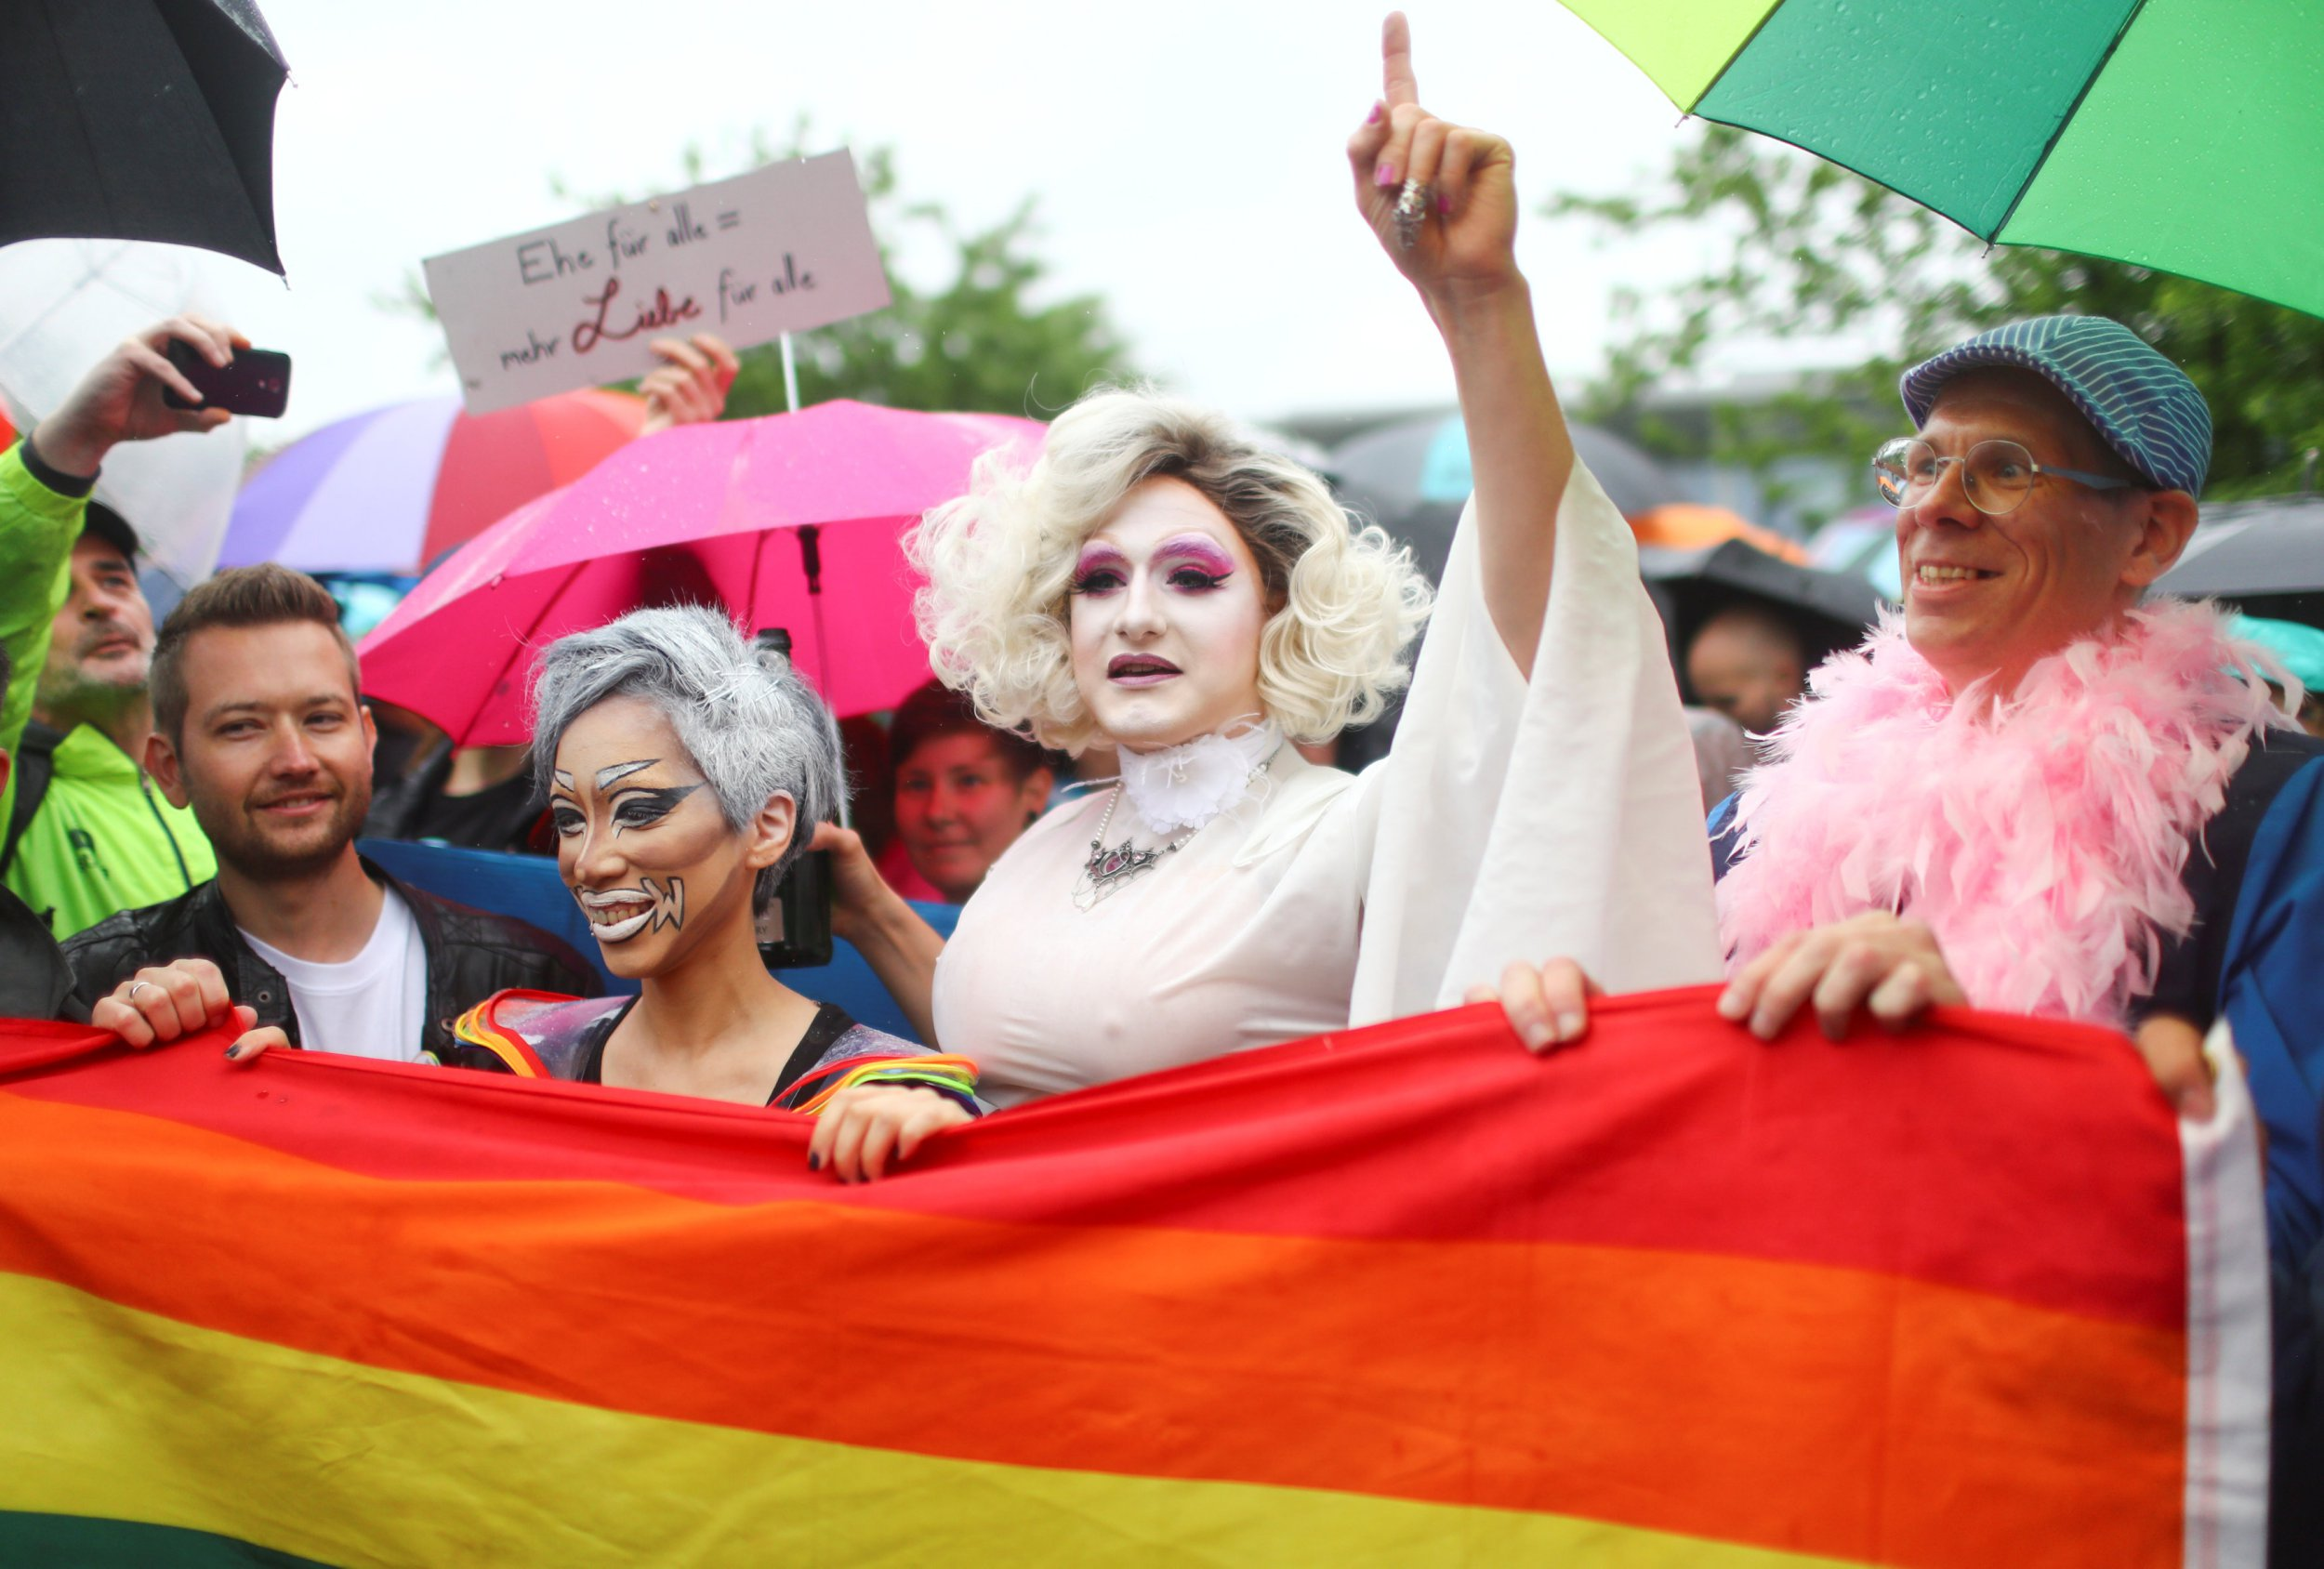 Gay marriage has been legalised in Germany